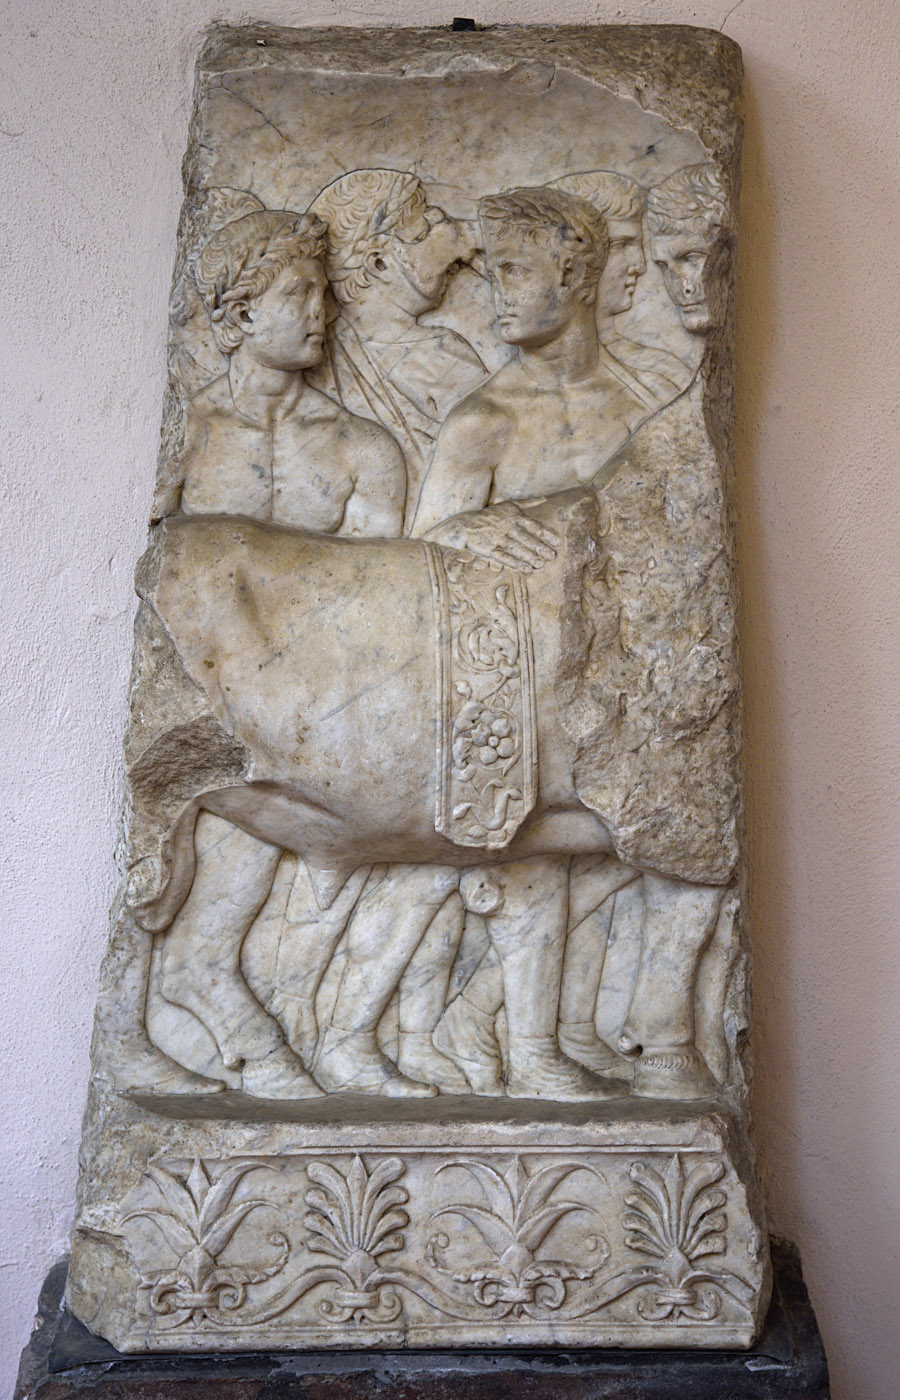 Altar relief with representation of a procession of priests (left part). Marble. 42—43 CE. Inv. No. 5. Ravenna, National Museum